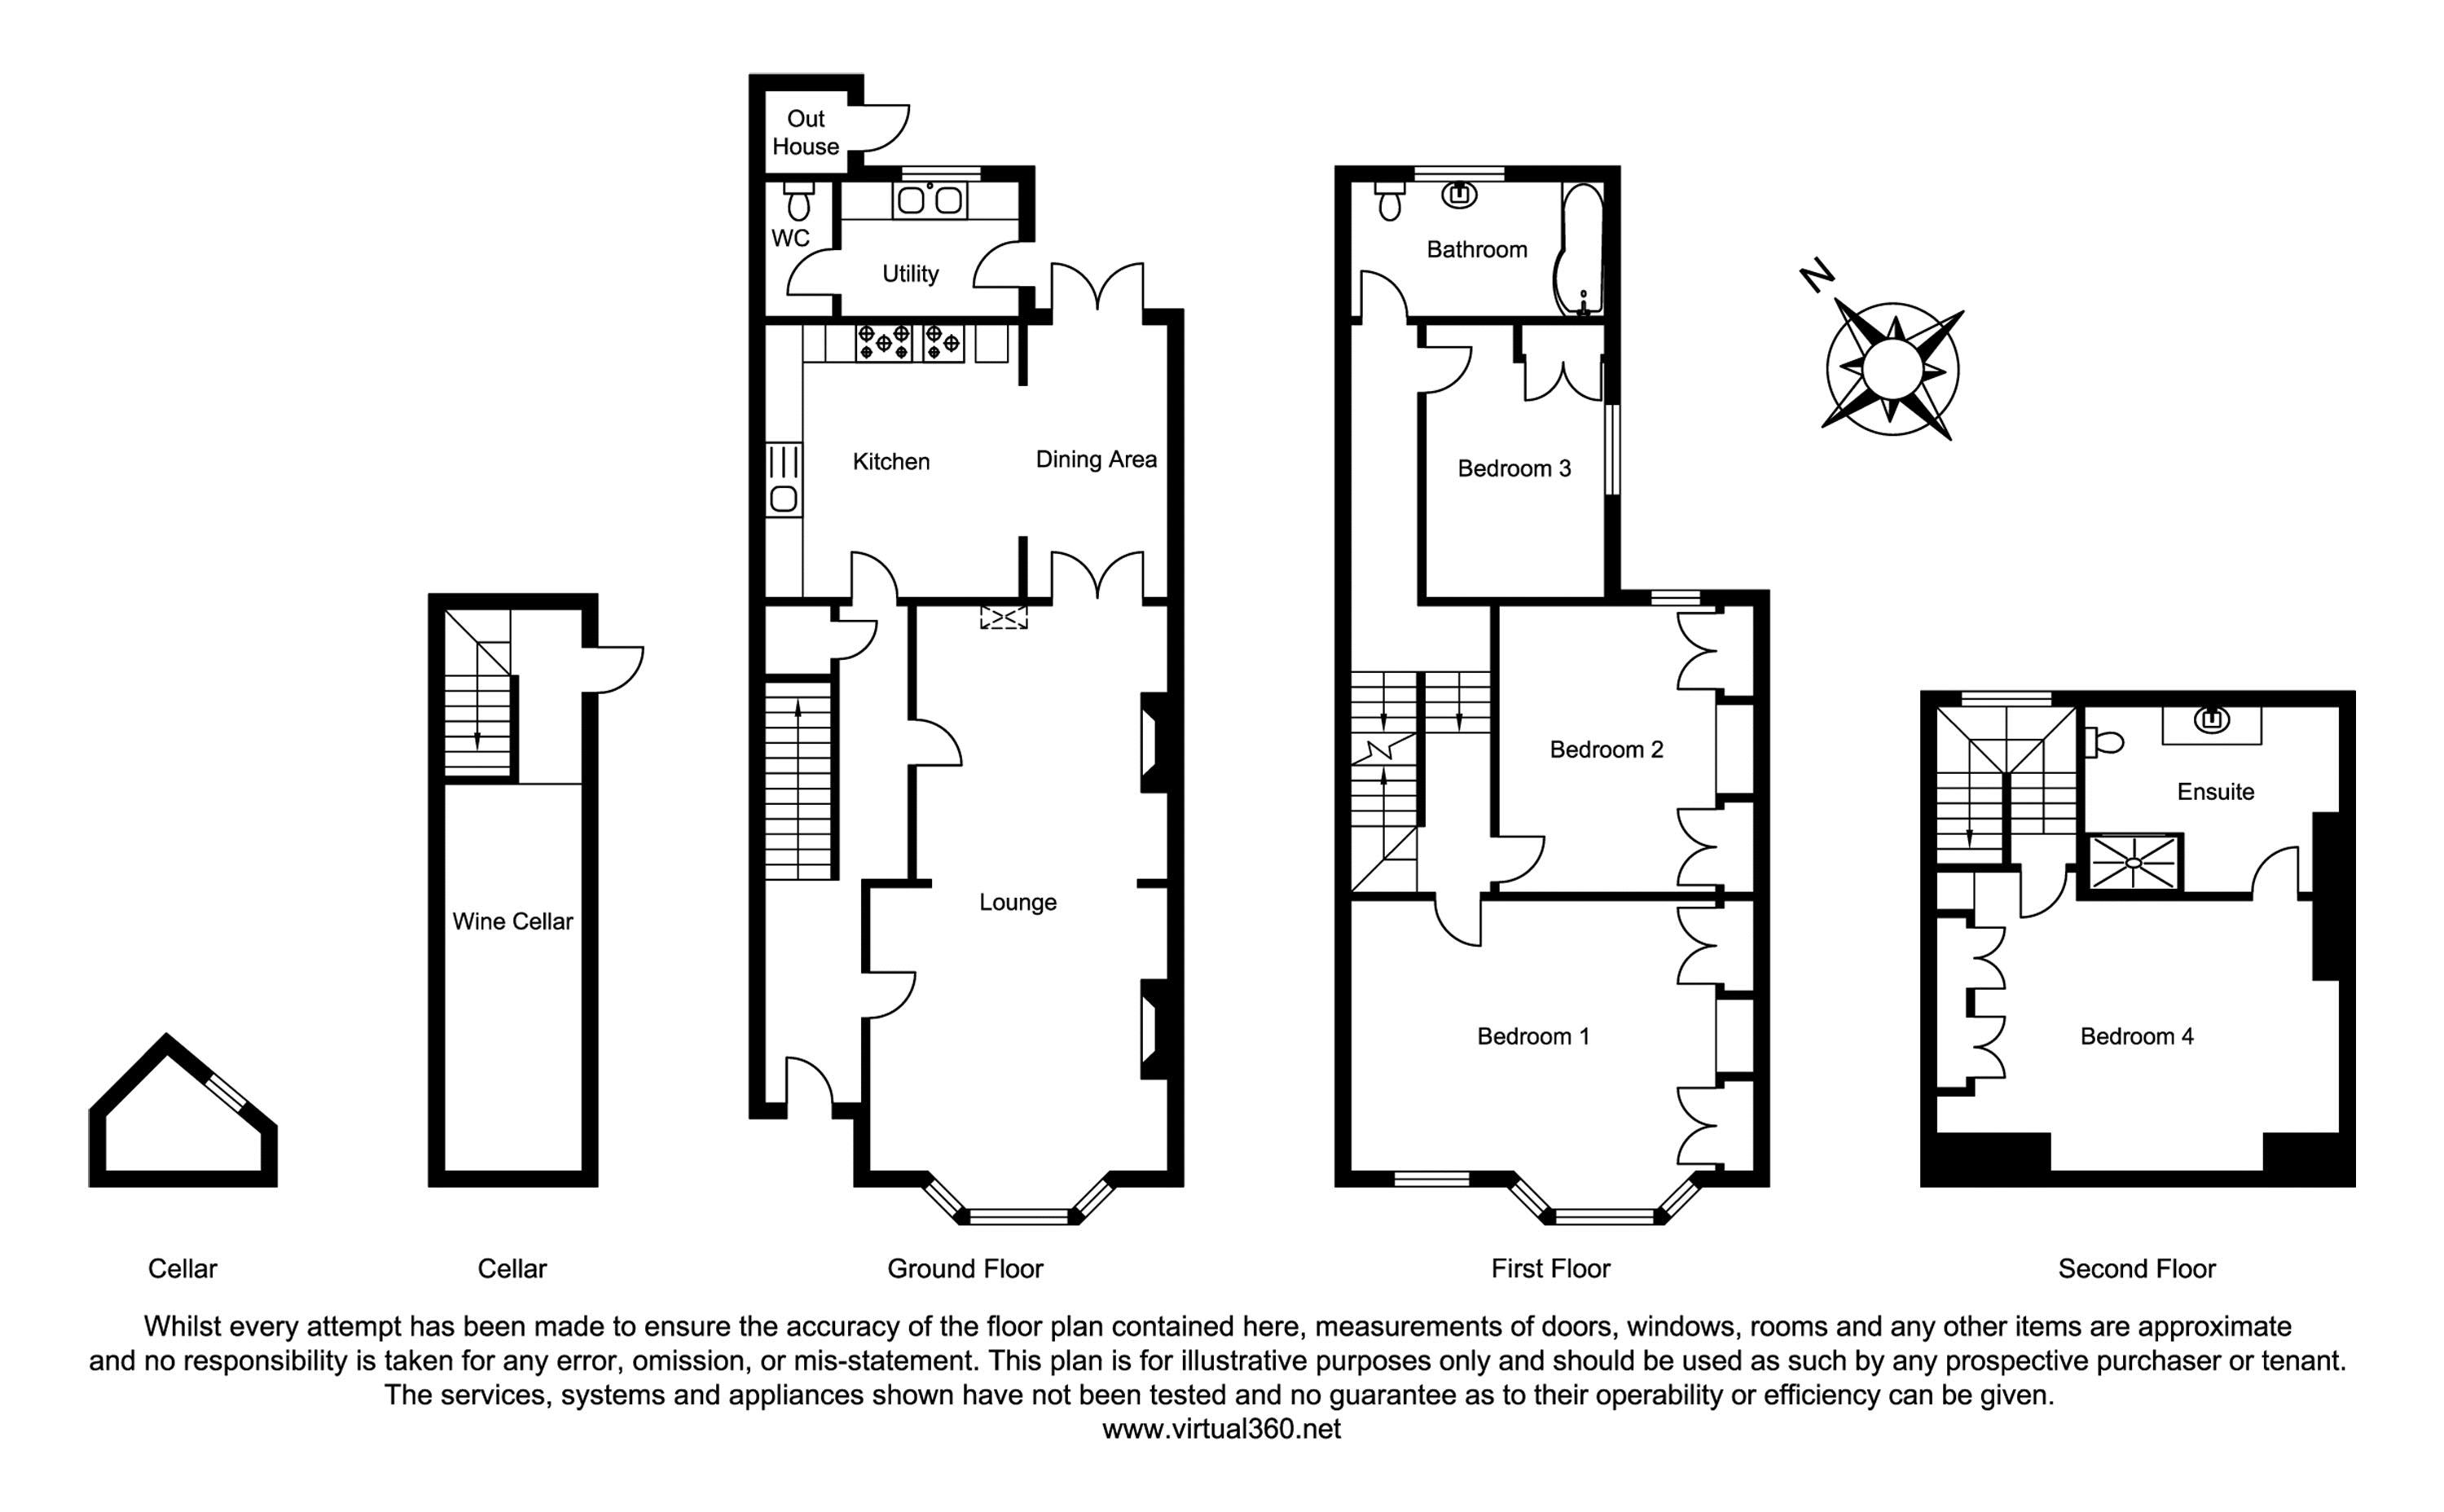 Kings Road, Cardiff floor plan